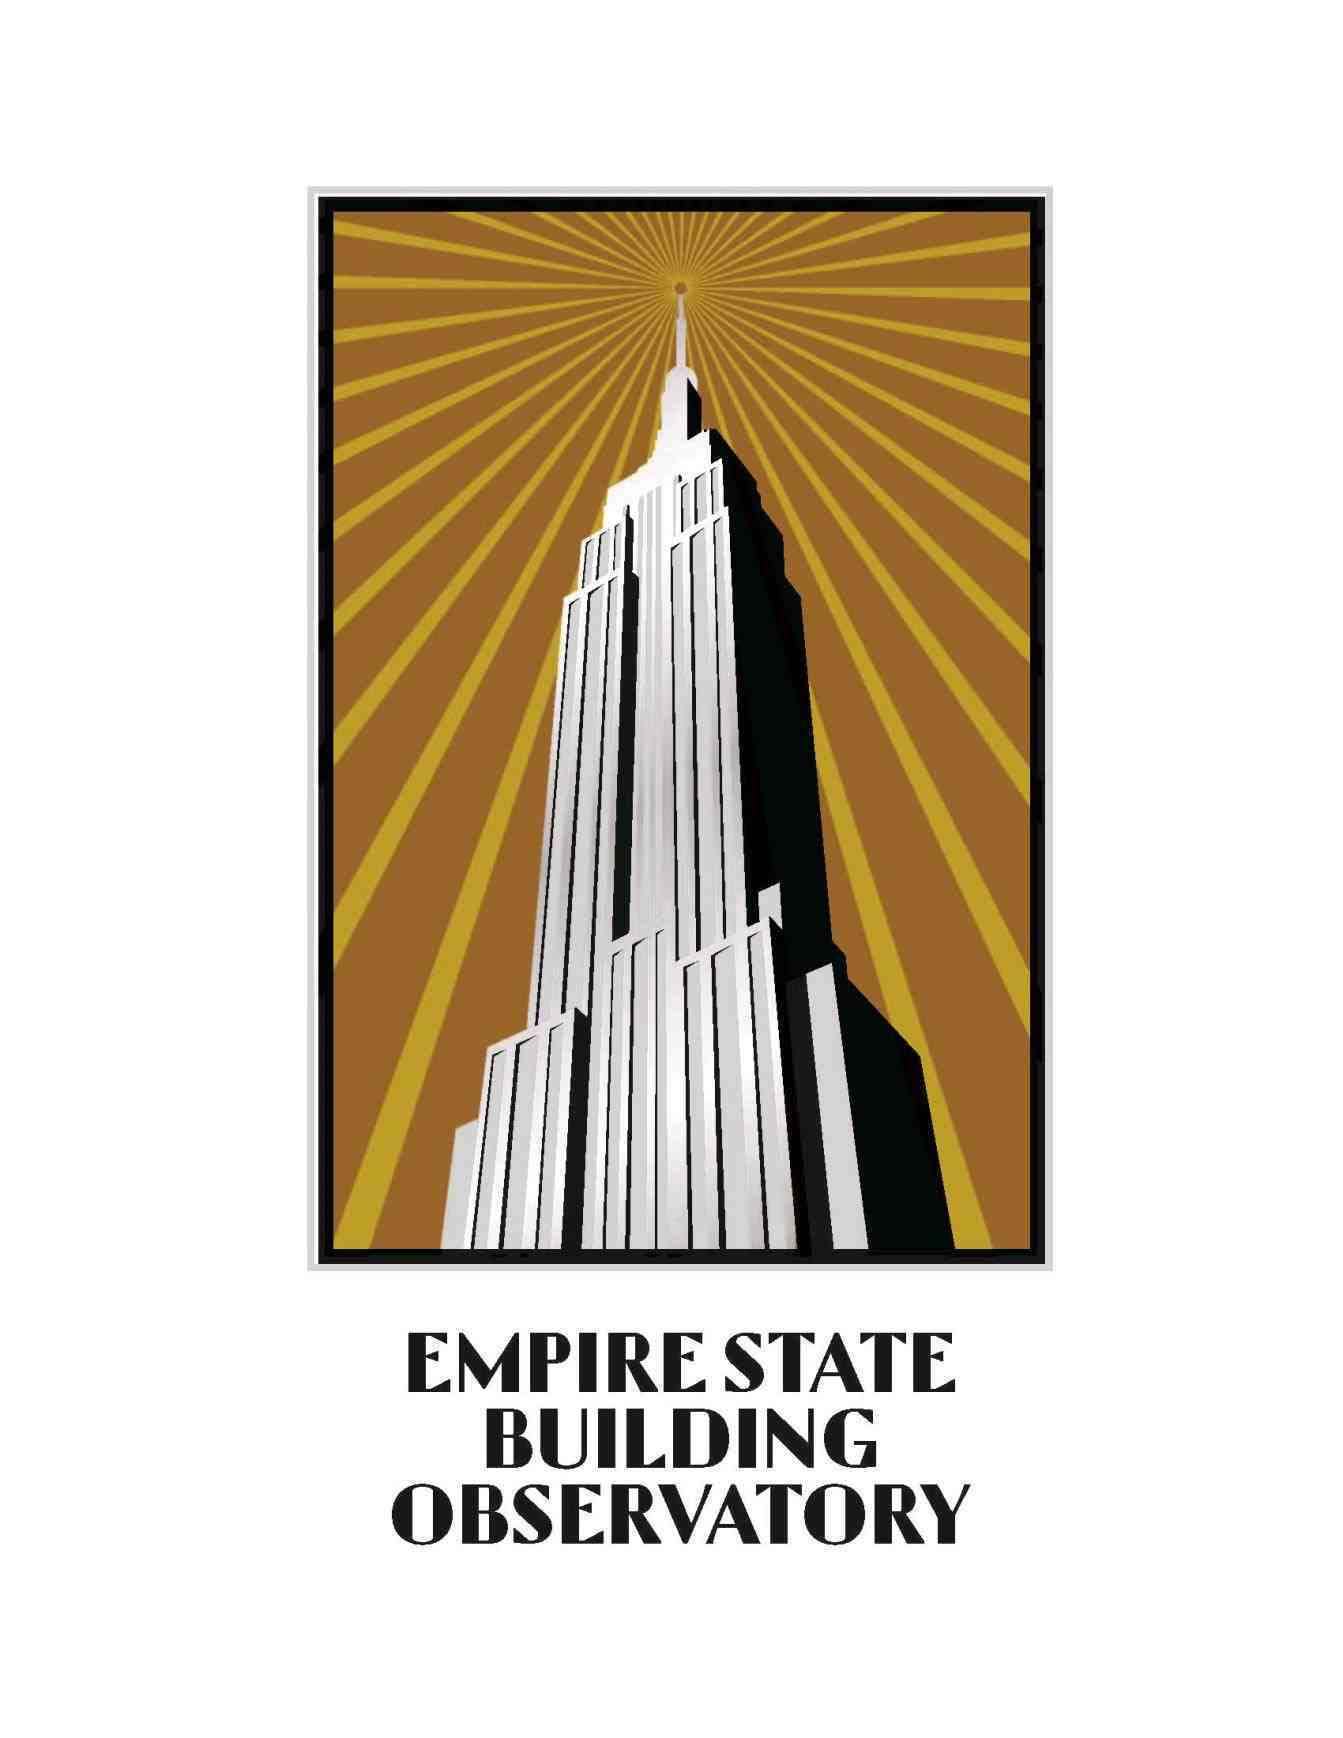 1343x1738 Setcity America Usa Travel Rhcouk New Empire State